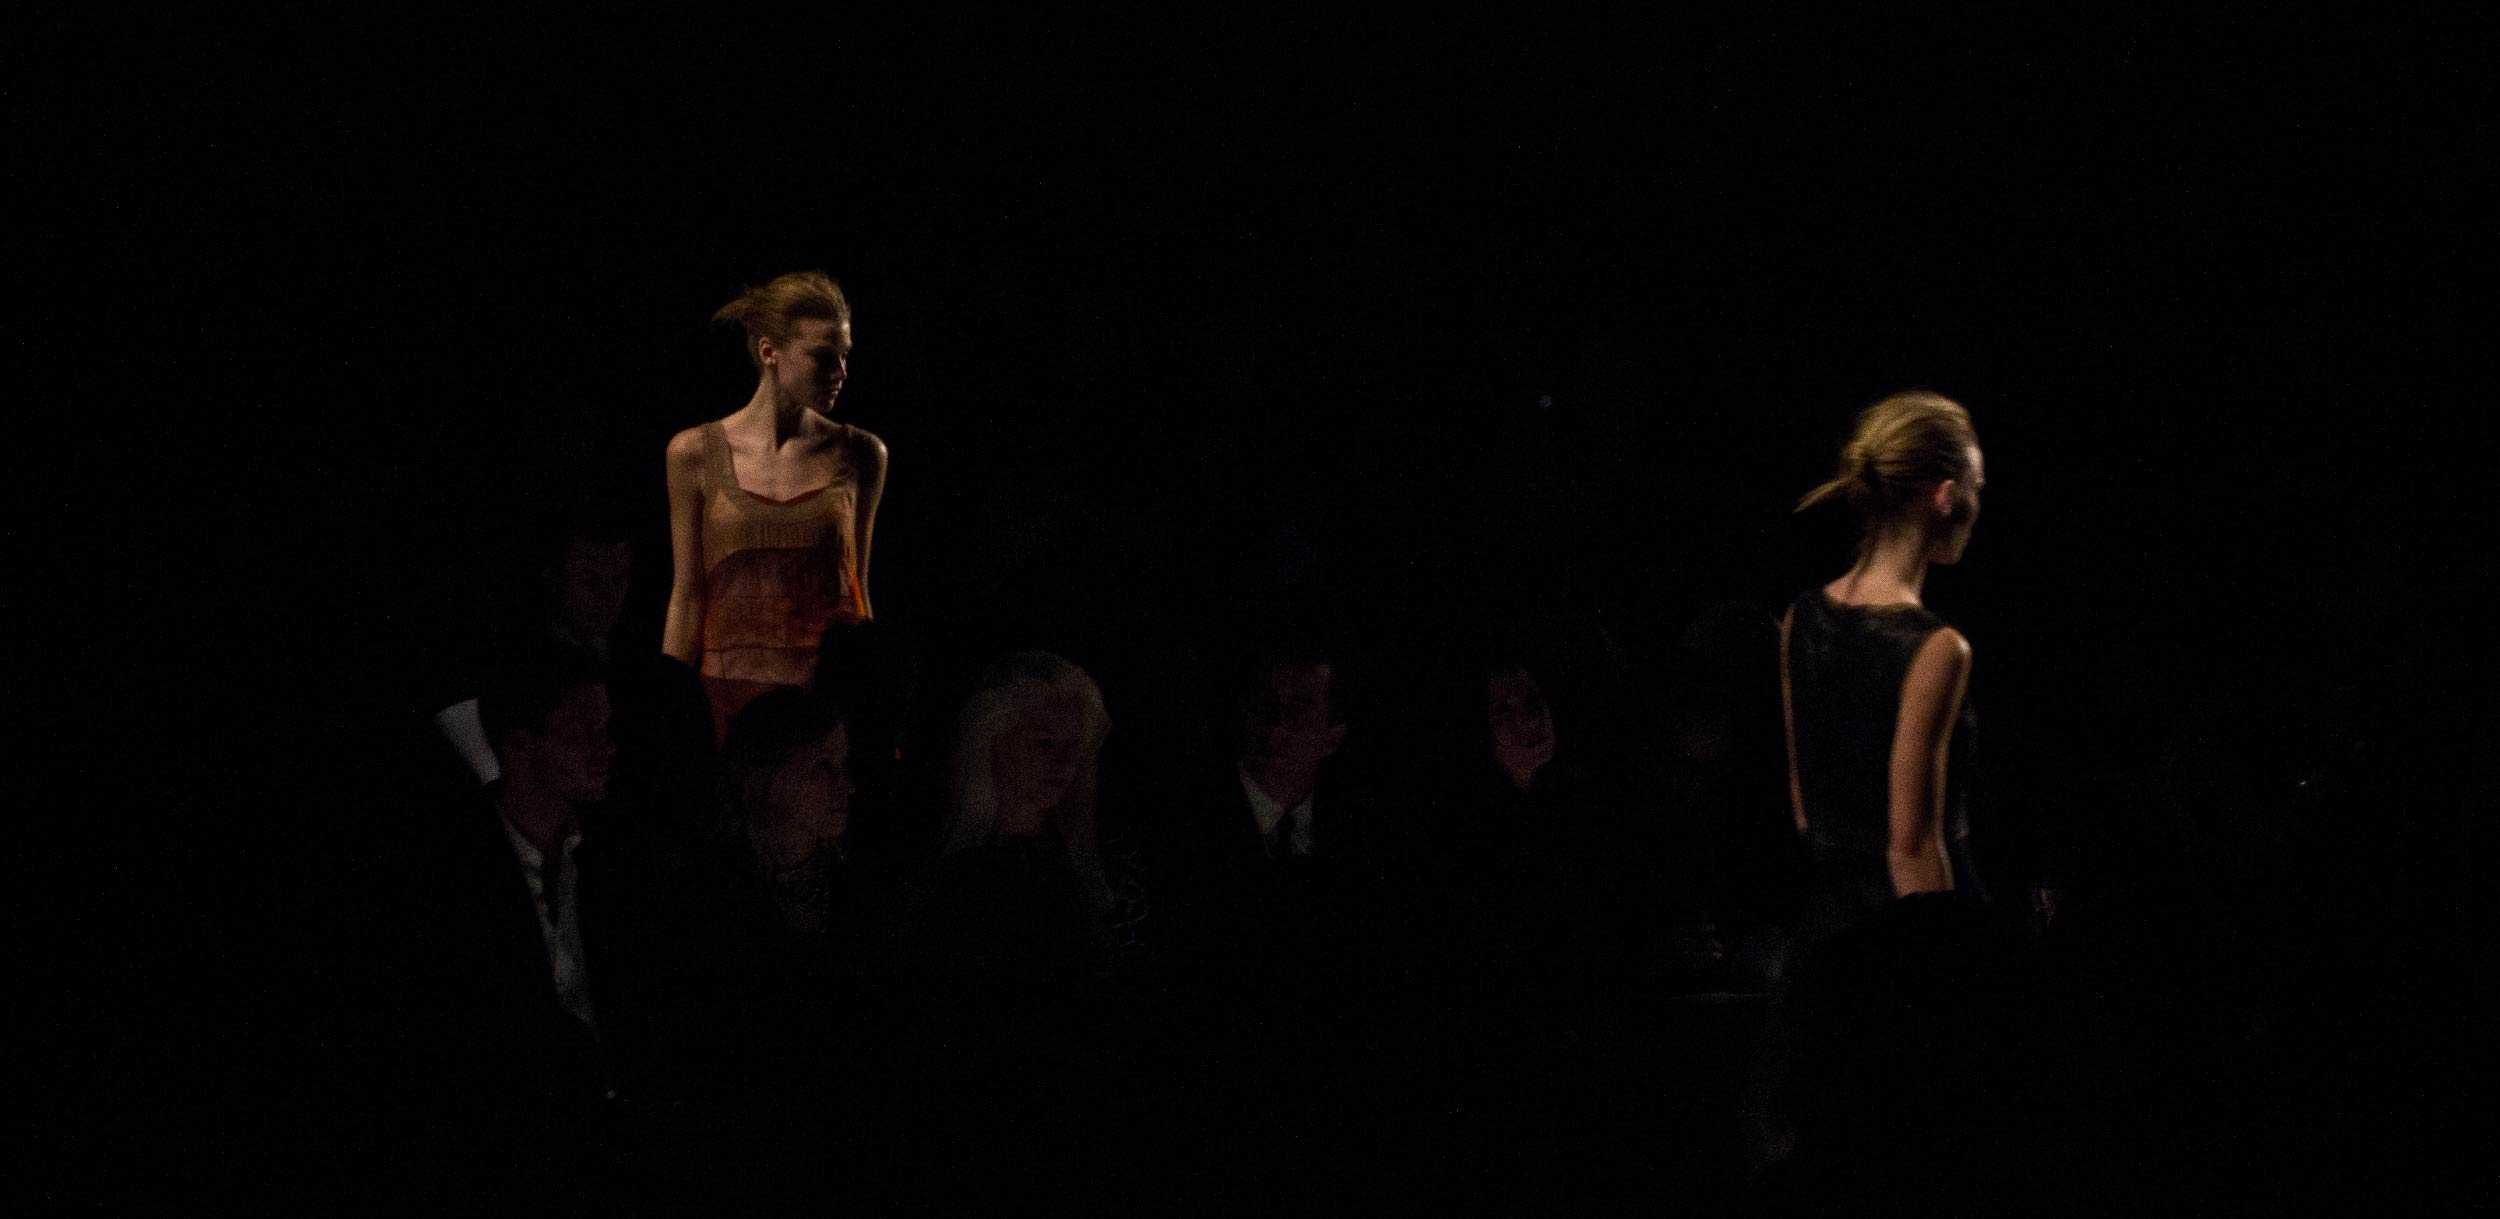 A still frame from David and Danny roberts of igorandandre short film from Narciso Rodriguez Fall 2011 fashion show